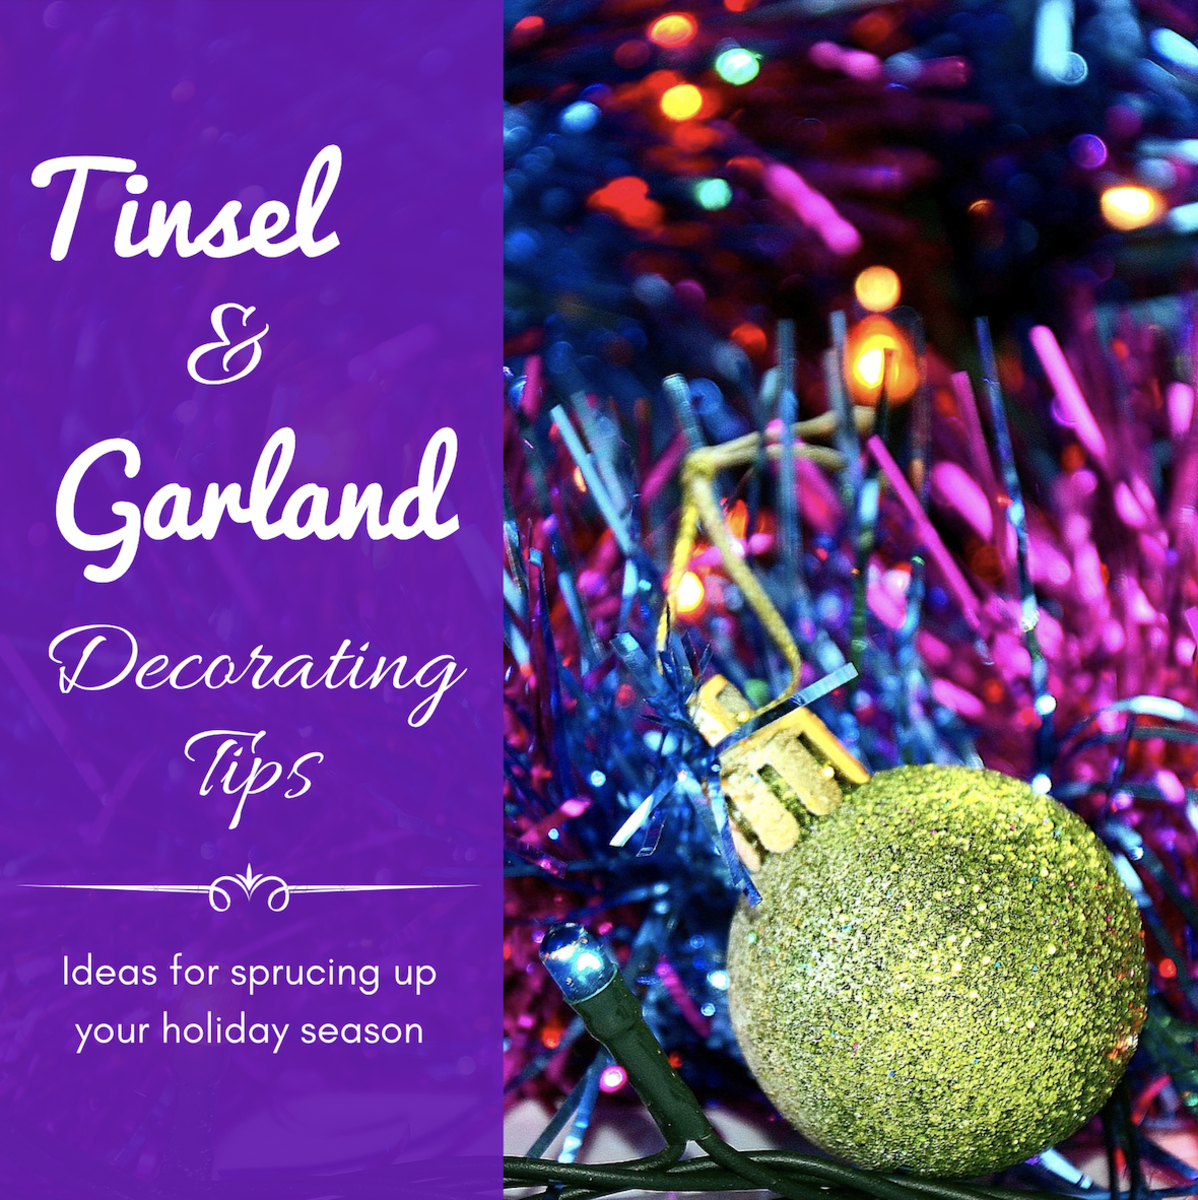 This article will provide some ideas of how to kick your holiday decorations up a notch with clever applications of tinsel and garland.